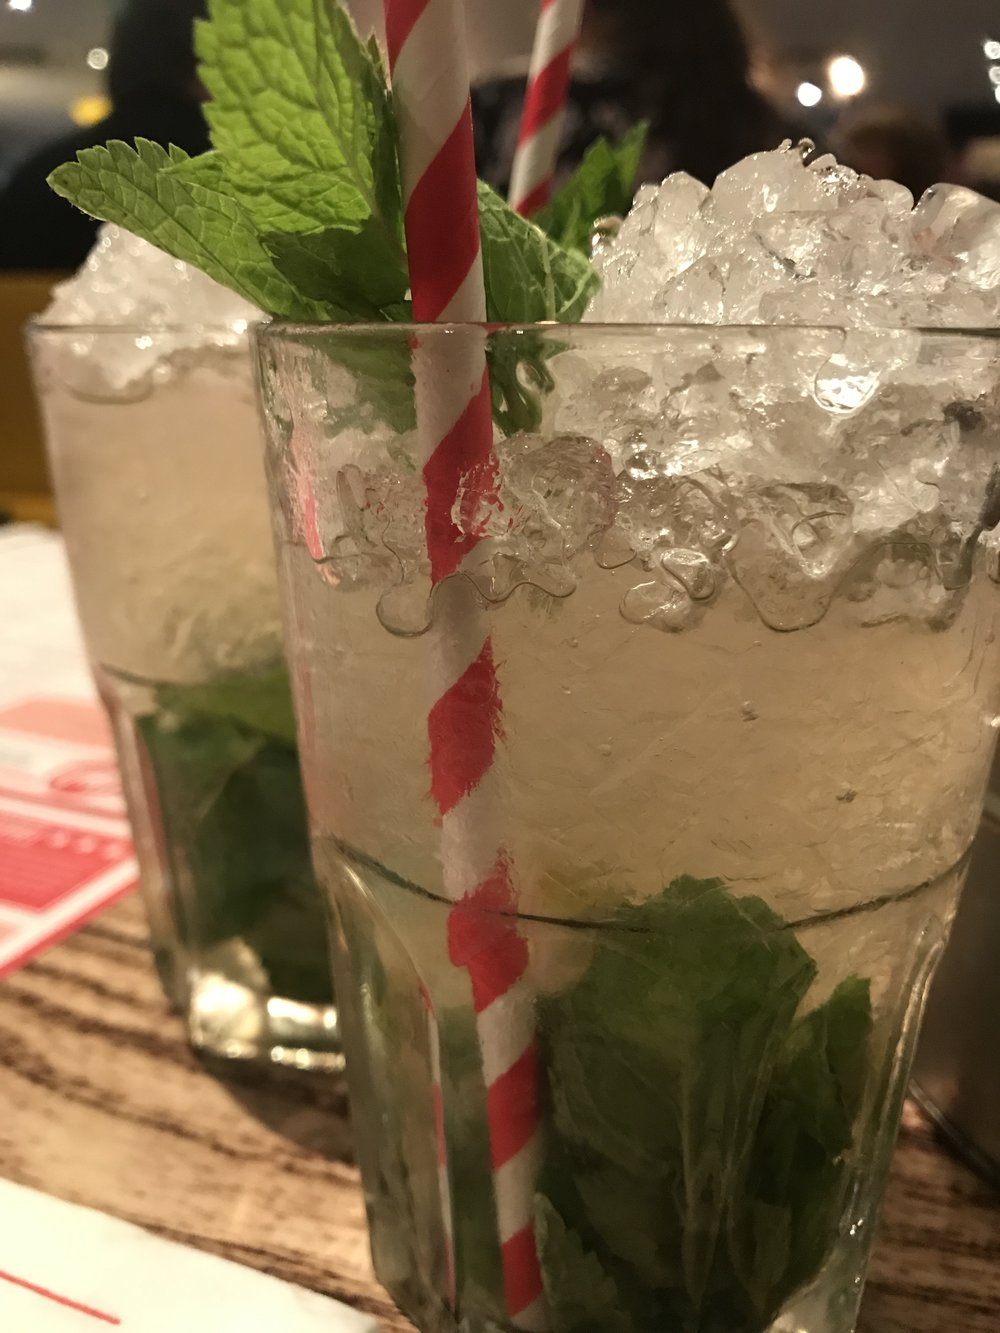 Buy one get one free on Mojito's is always a winner with me